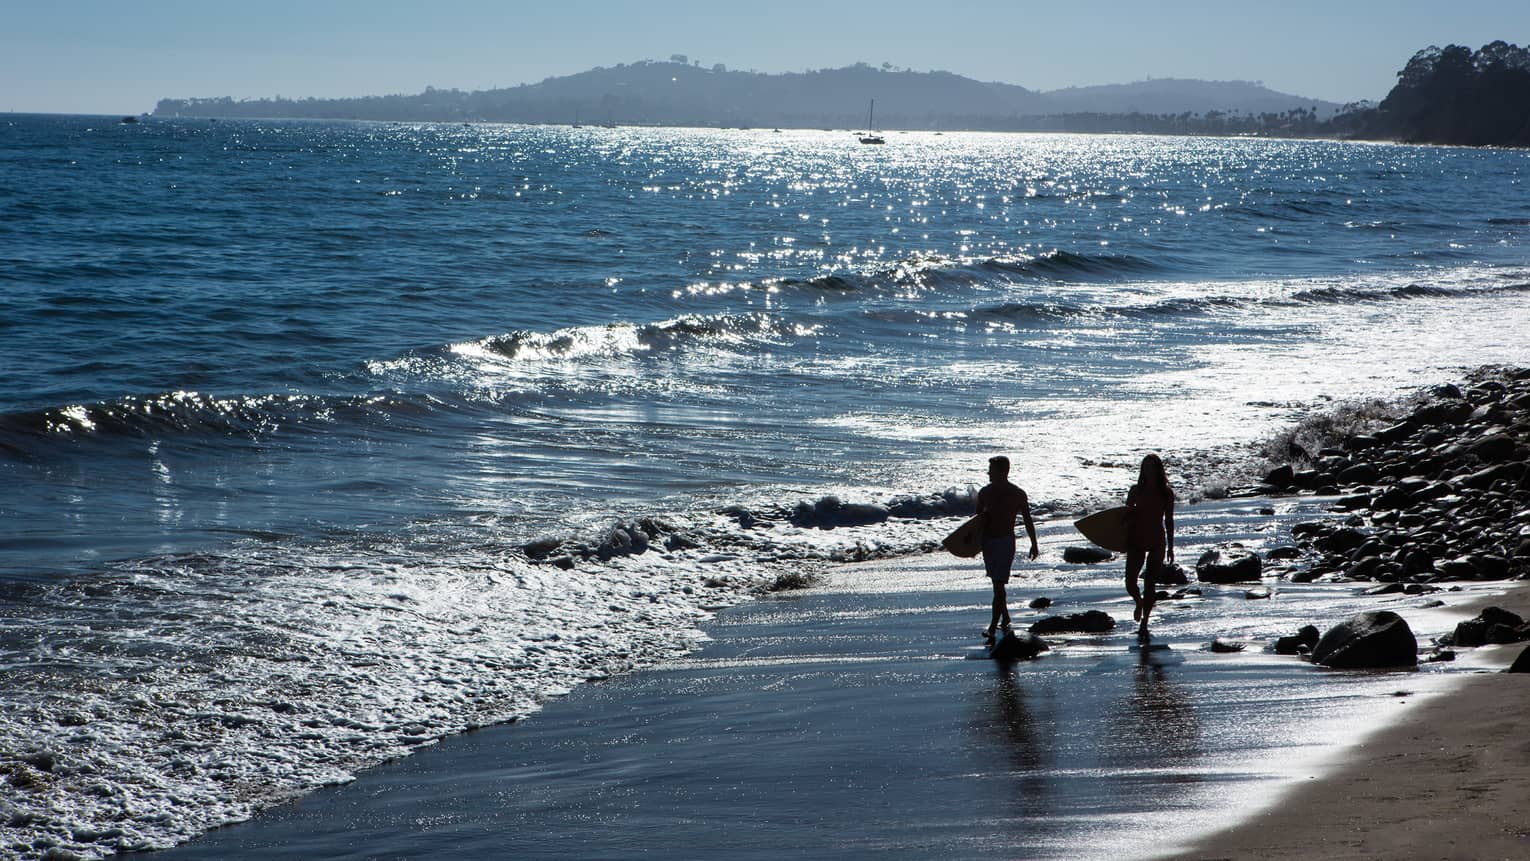 Silhouettes of two people carrying surfboards along beach shoreline